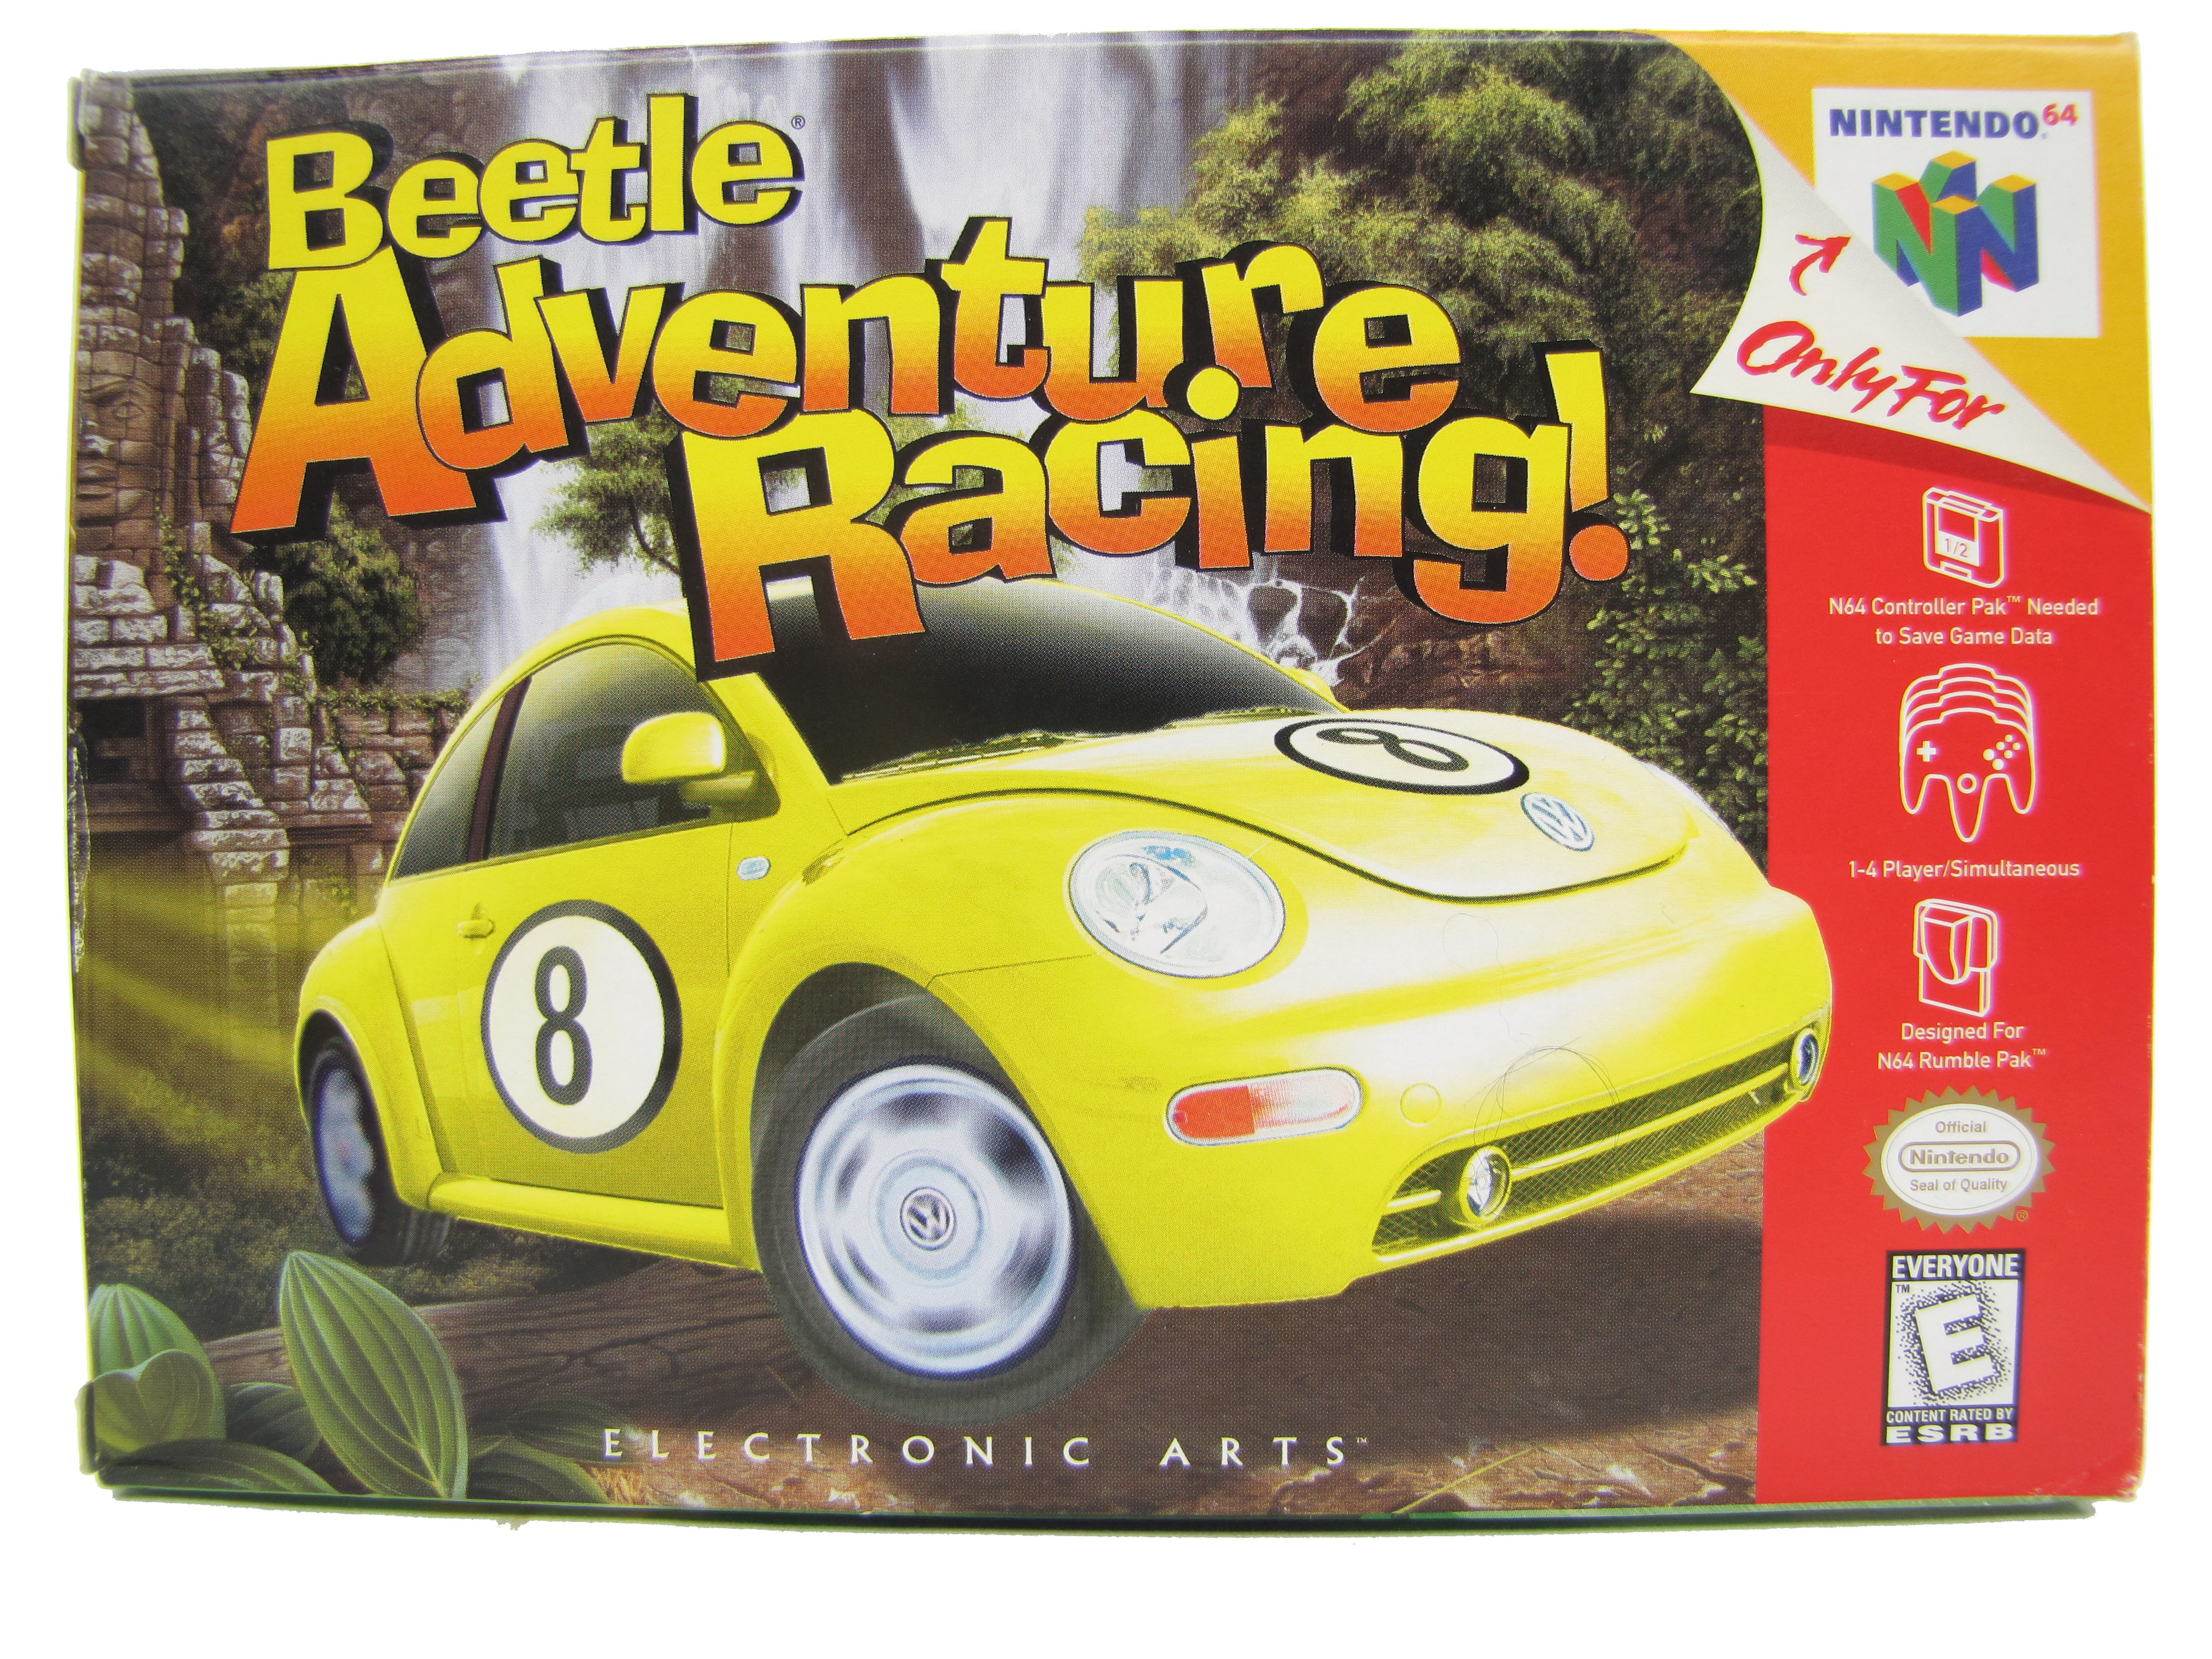 N64 Beetle Adventure Racing Complete in Box - 1999